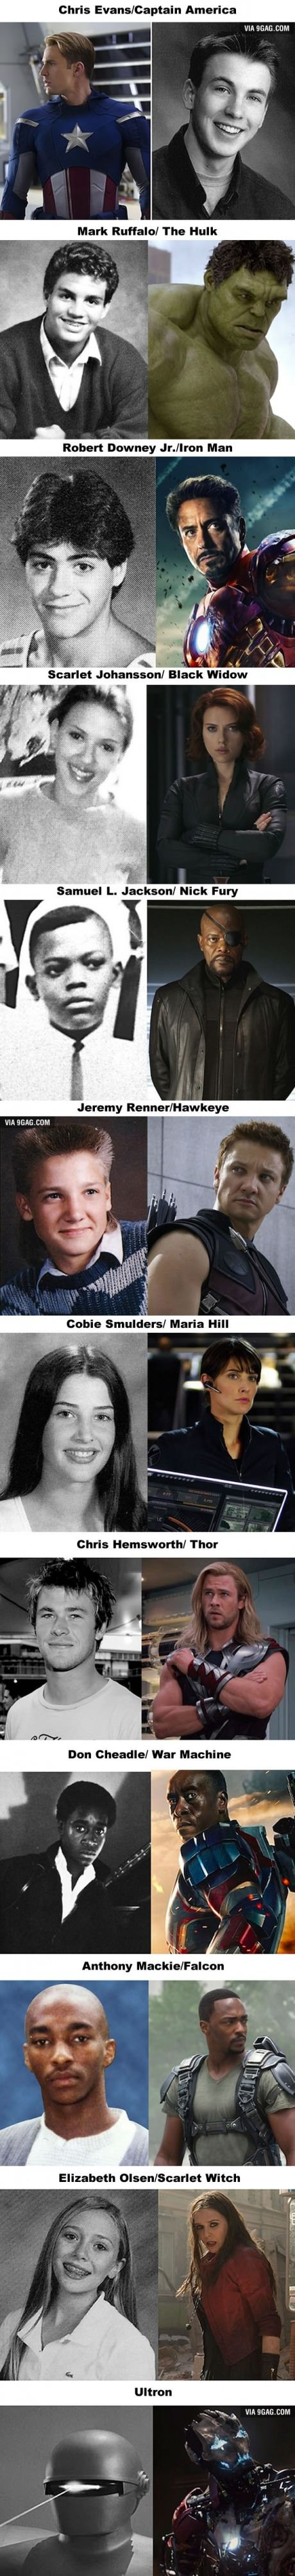 What the Cast of The Avengers: Age of Ultron Looked Like in High School